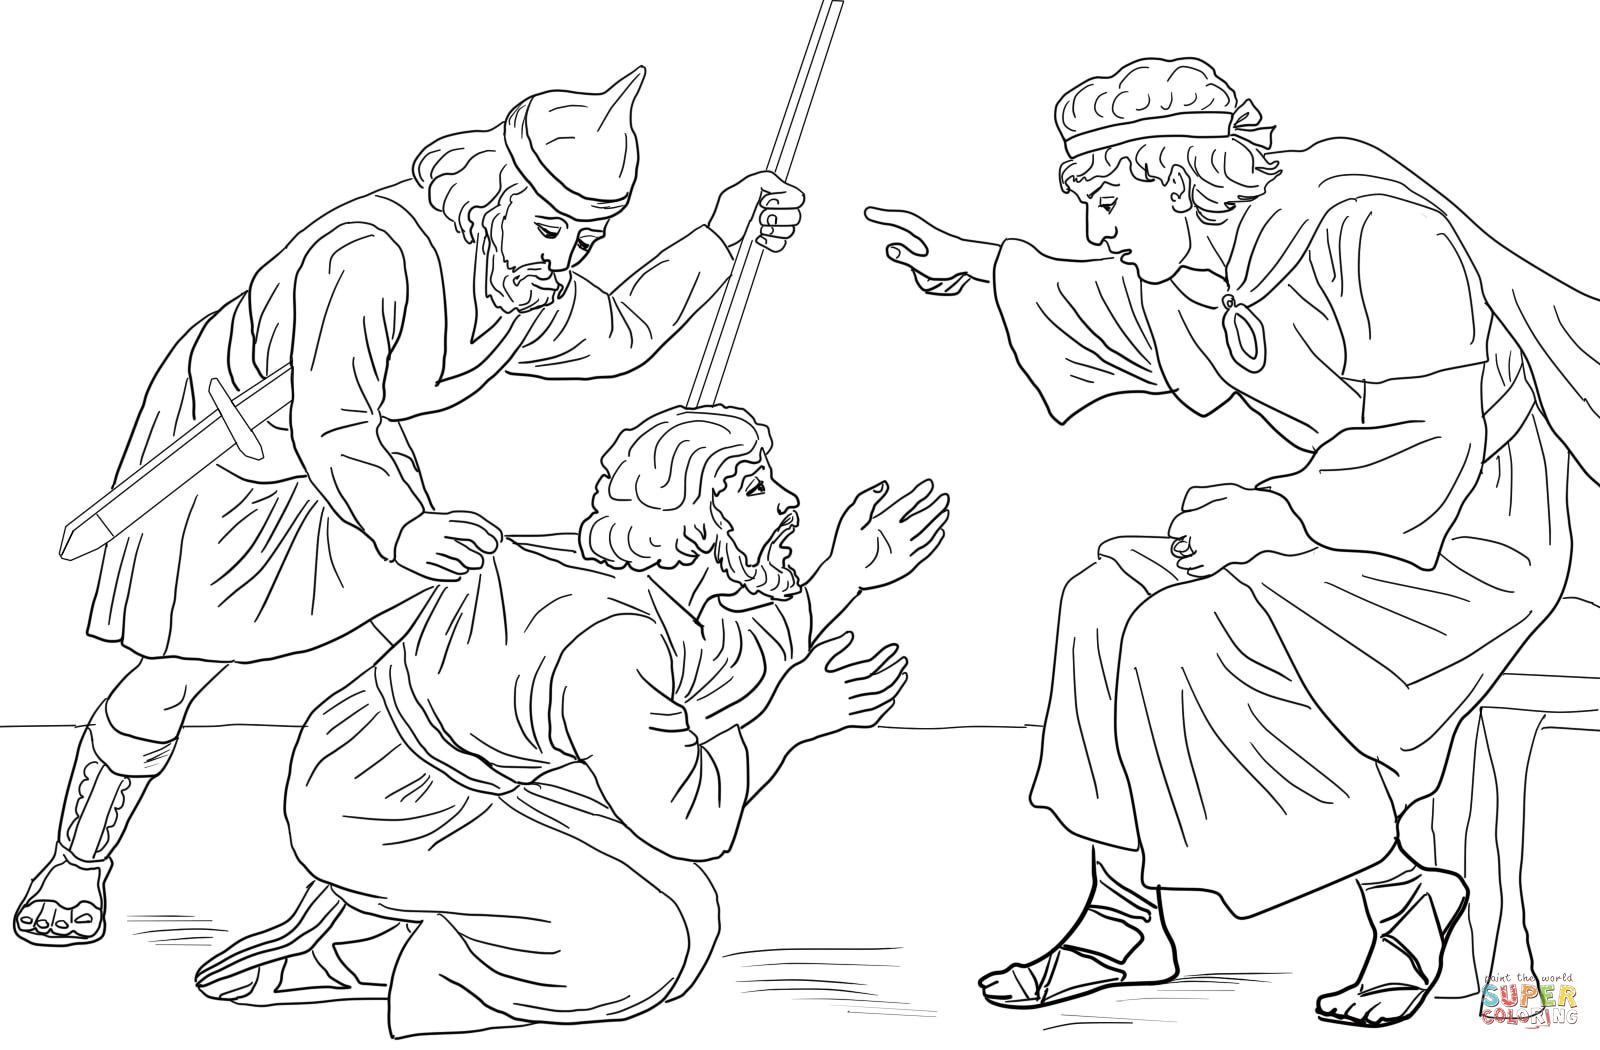 Parable Of Unmerciful Servant Coloring Page